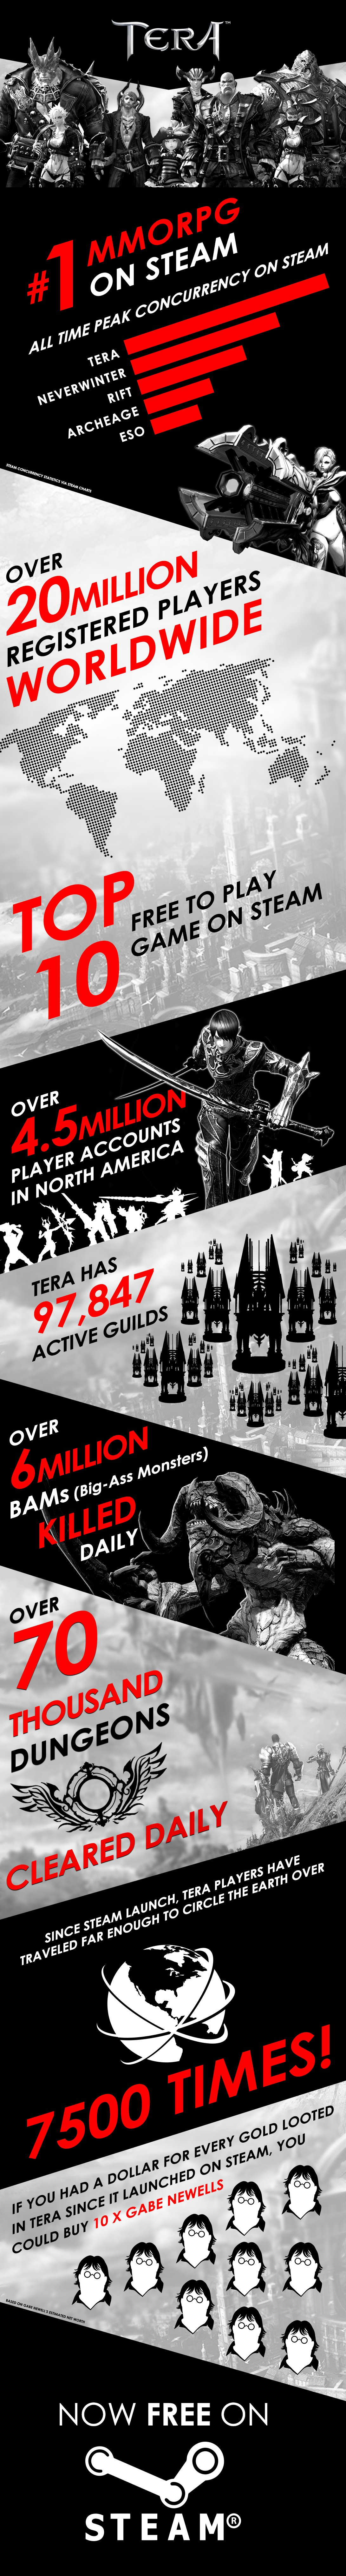 TERA_on_Steam_Infographic_v3-noscale